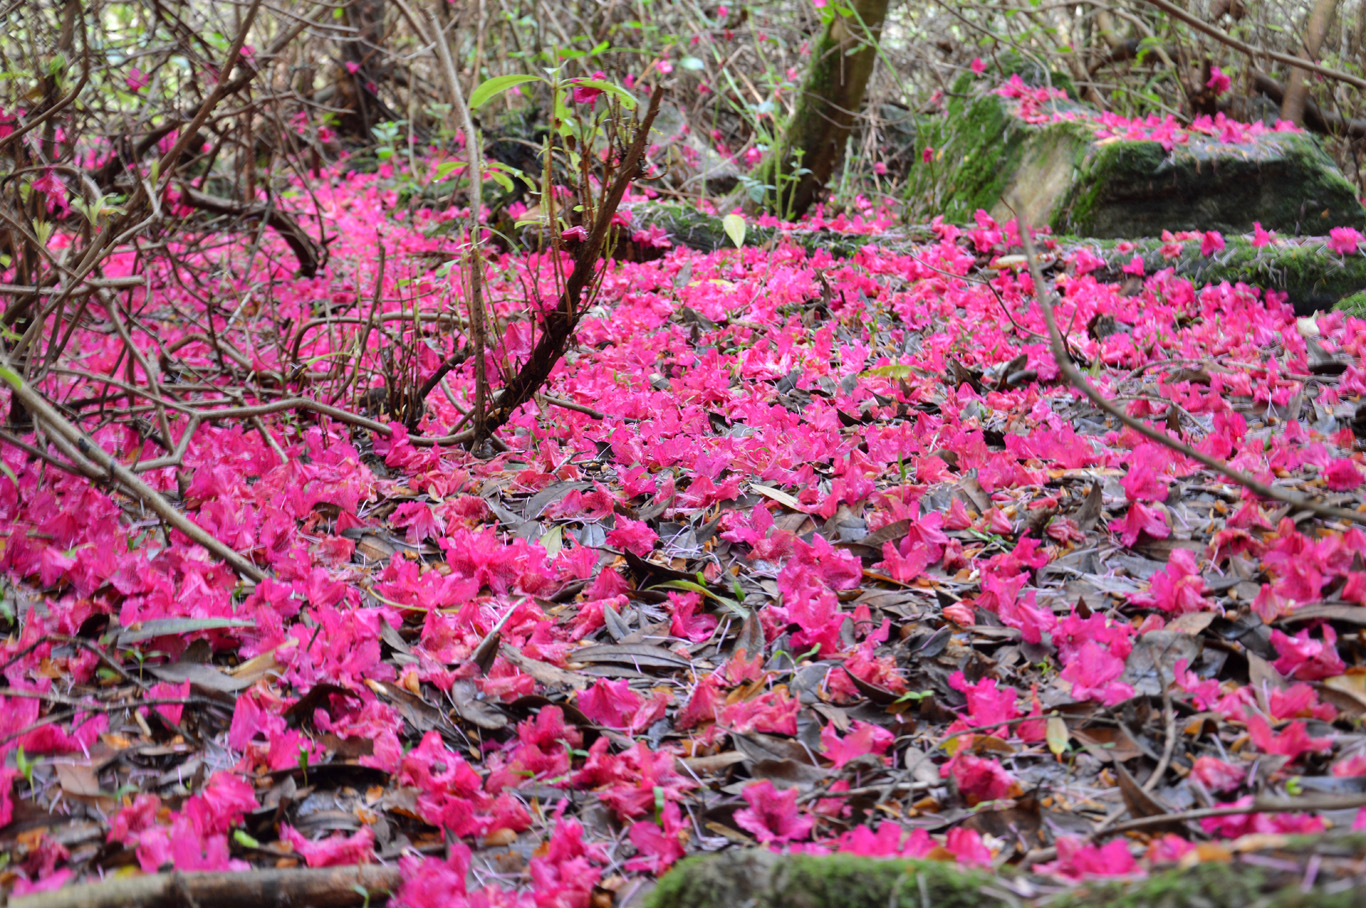 Carpet of beautiful rhododendron flowers